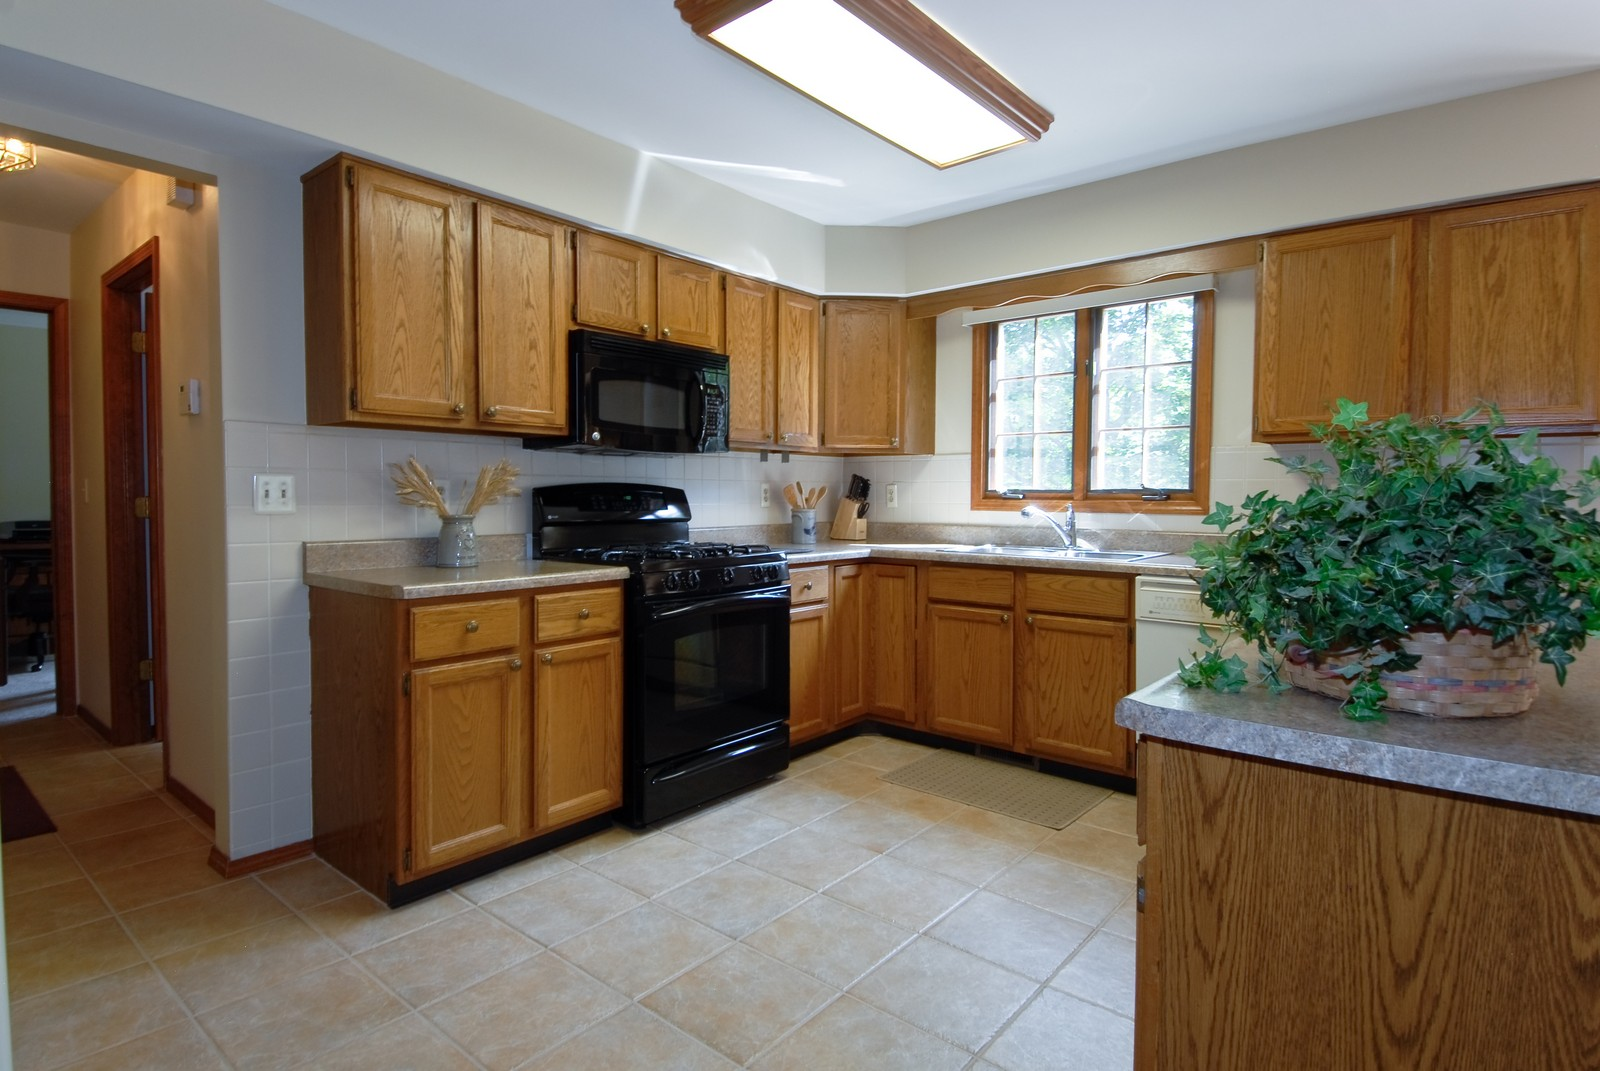 Real Estate Photography - 913 Lewis Rd, Geneva, IL, 60134 - Kitchen